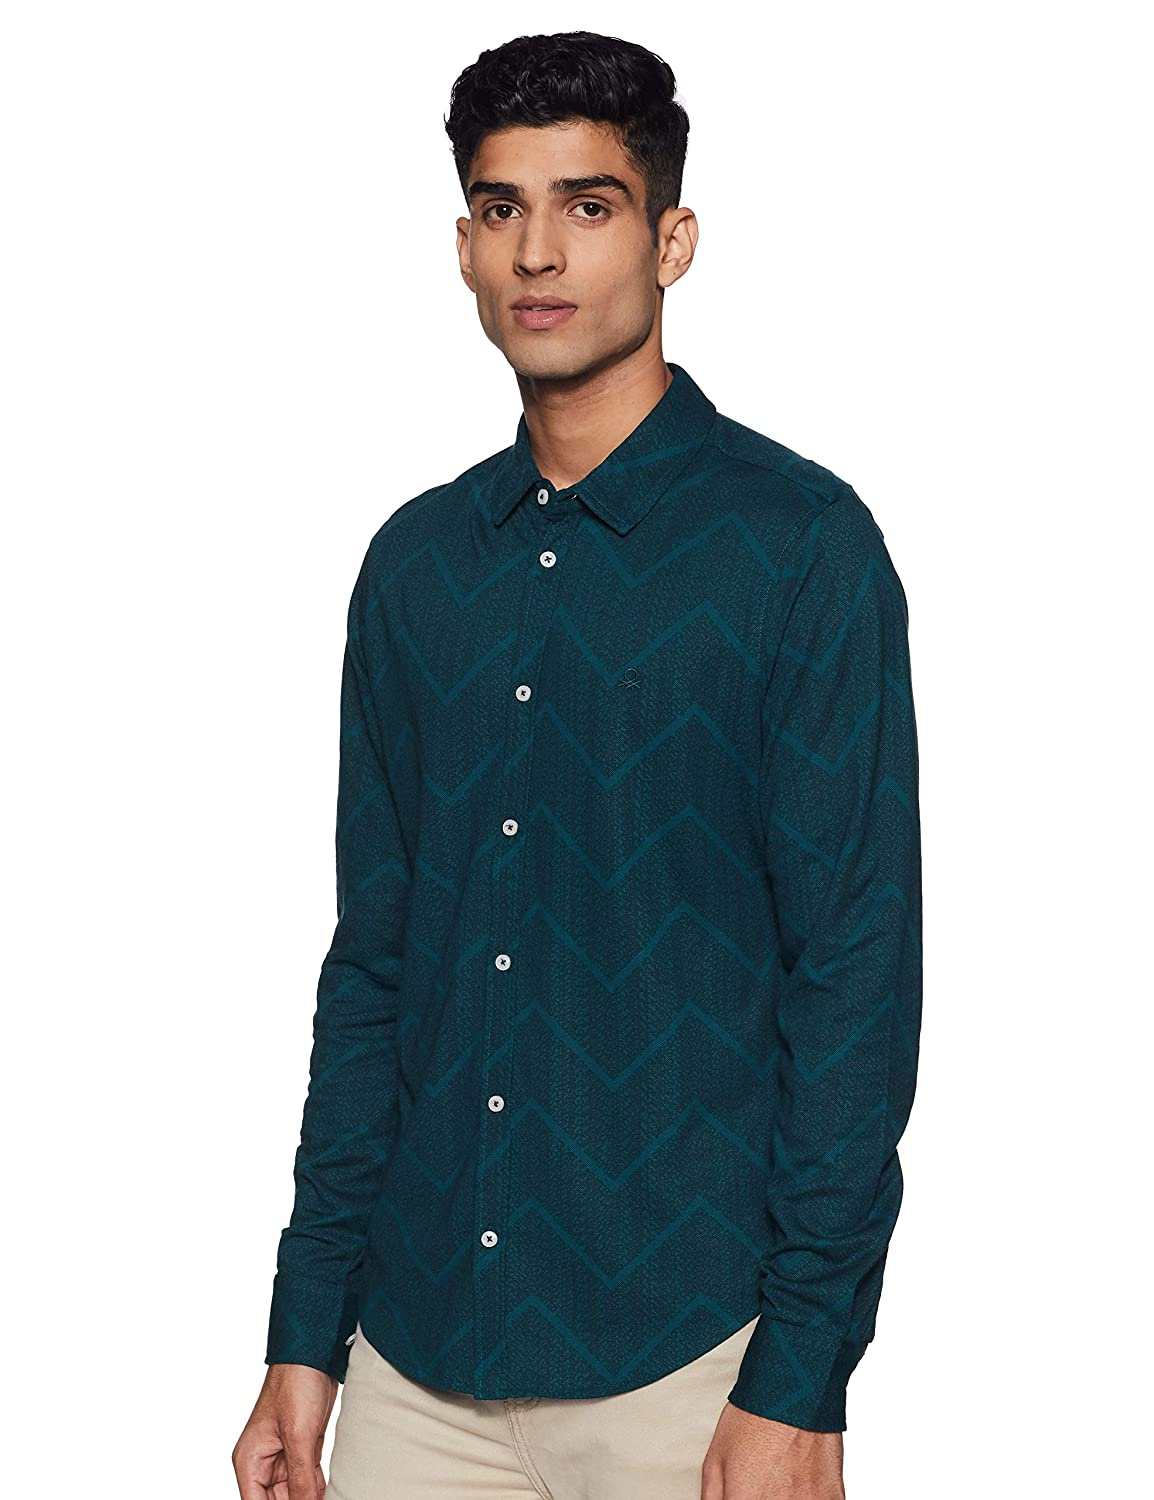 United Colors of Benetton Men's Printed Slim fit Casual Shirt – Size XL